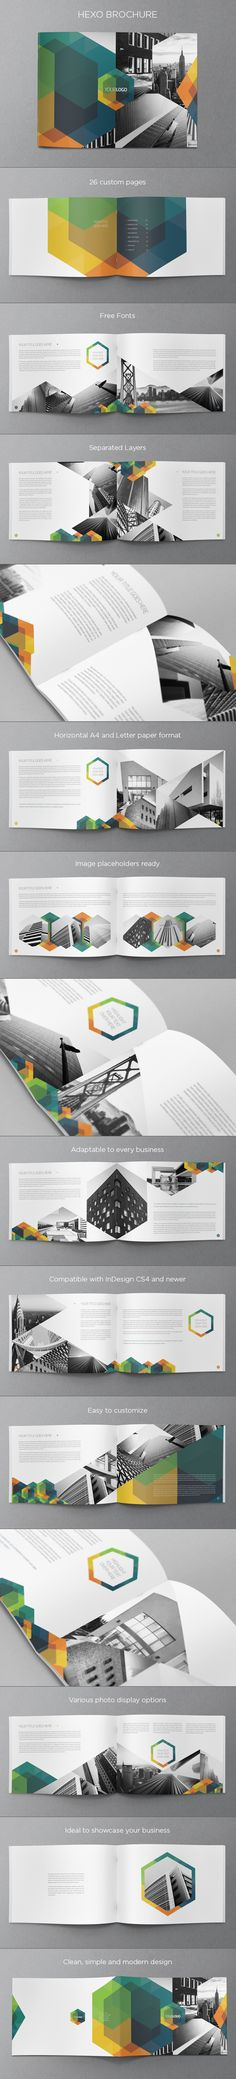 Creative Design, Brochure, Graphic, Layout, and Hexo image ideas & inspiration on Designspiration Layout Design, Graphisches Design, Buch Design, Graphic Design Layouts, Print Layout, Swiss Design, Print Design, Brochure Indesign, Design Brochure